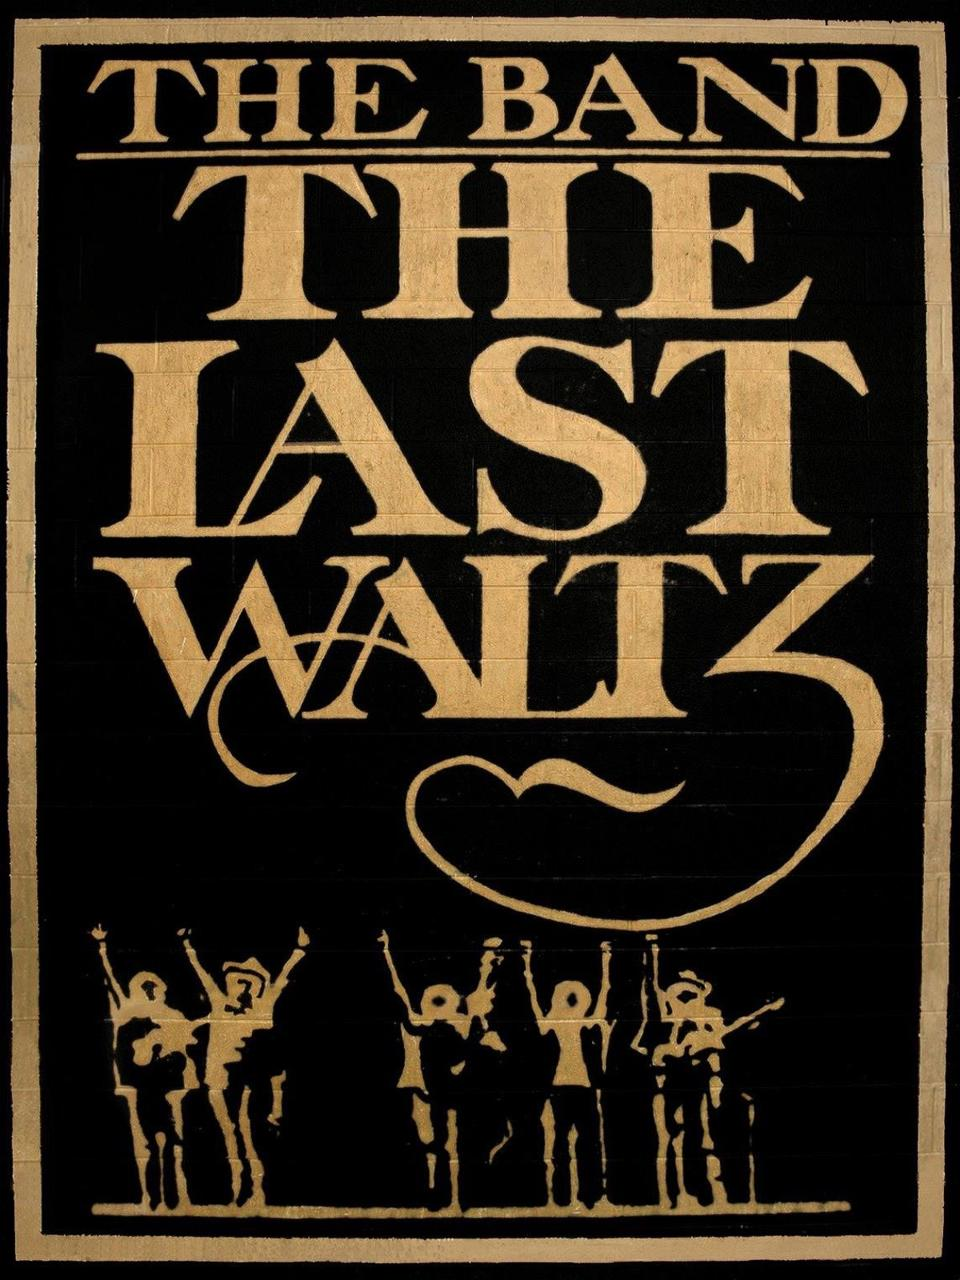 The Last Waltz, The Band